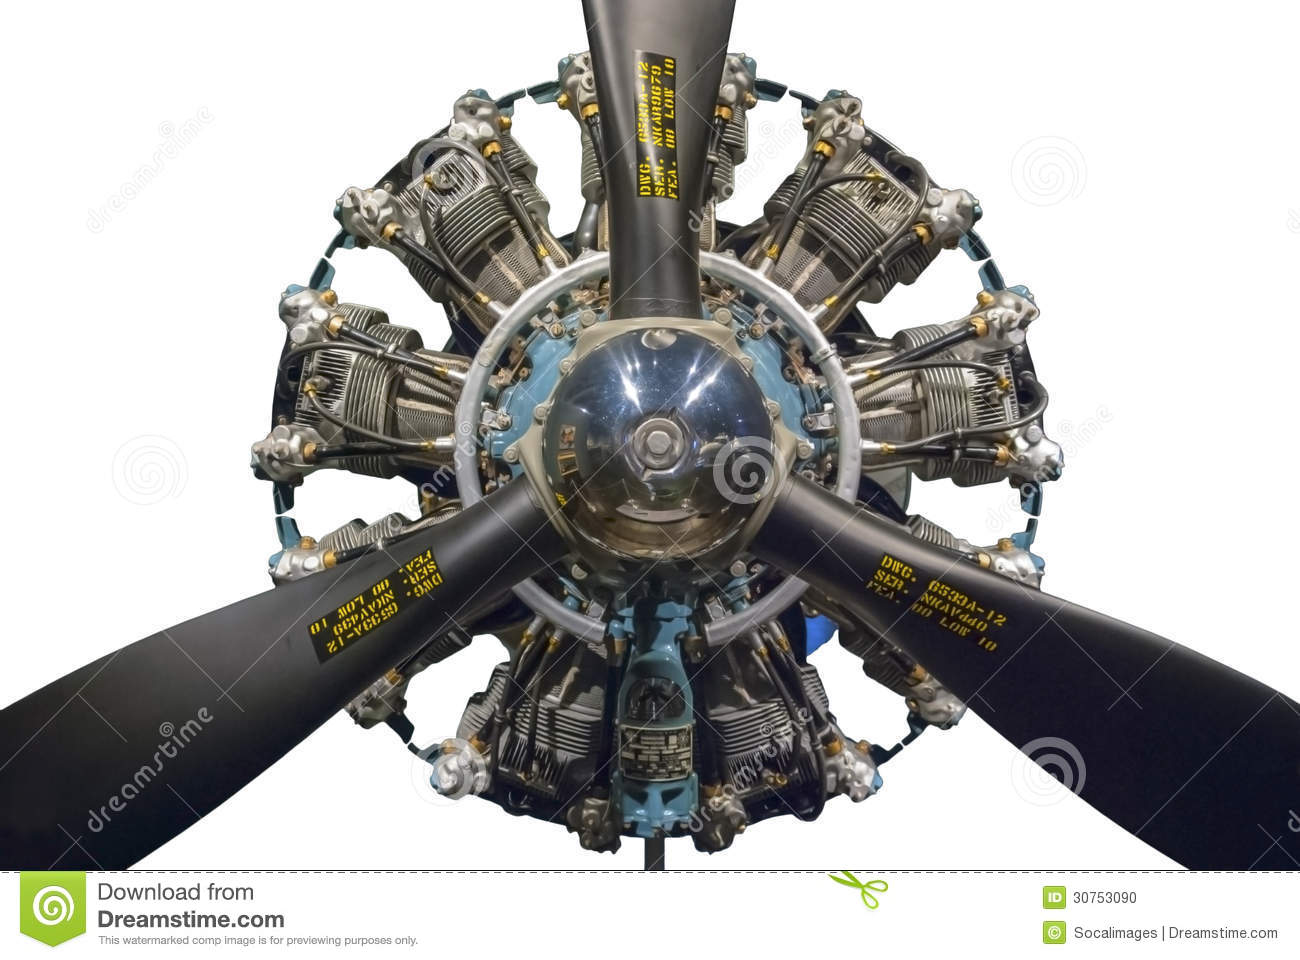 Radial Engine Stock Photo - Image: 30753090